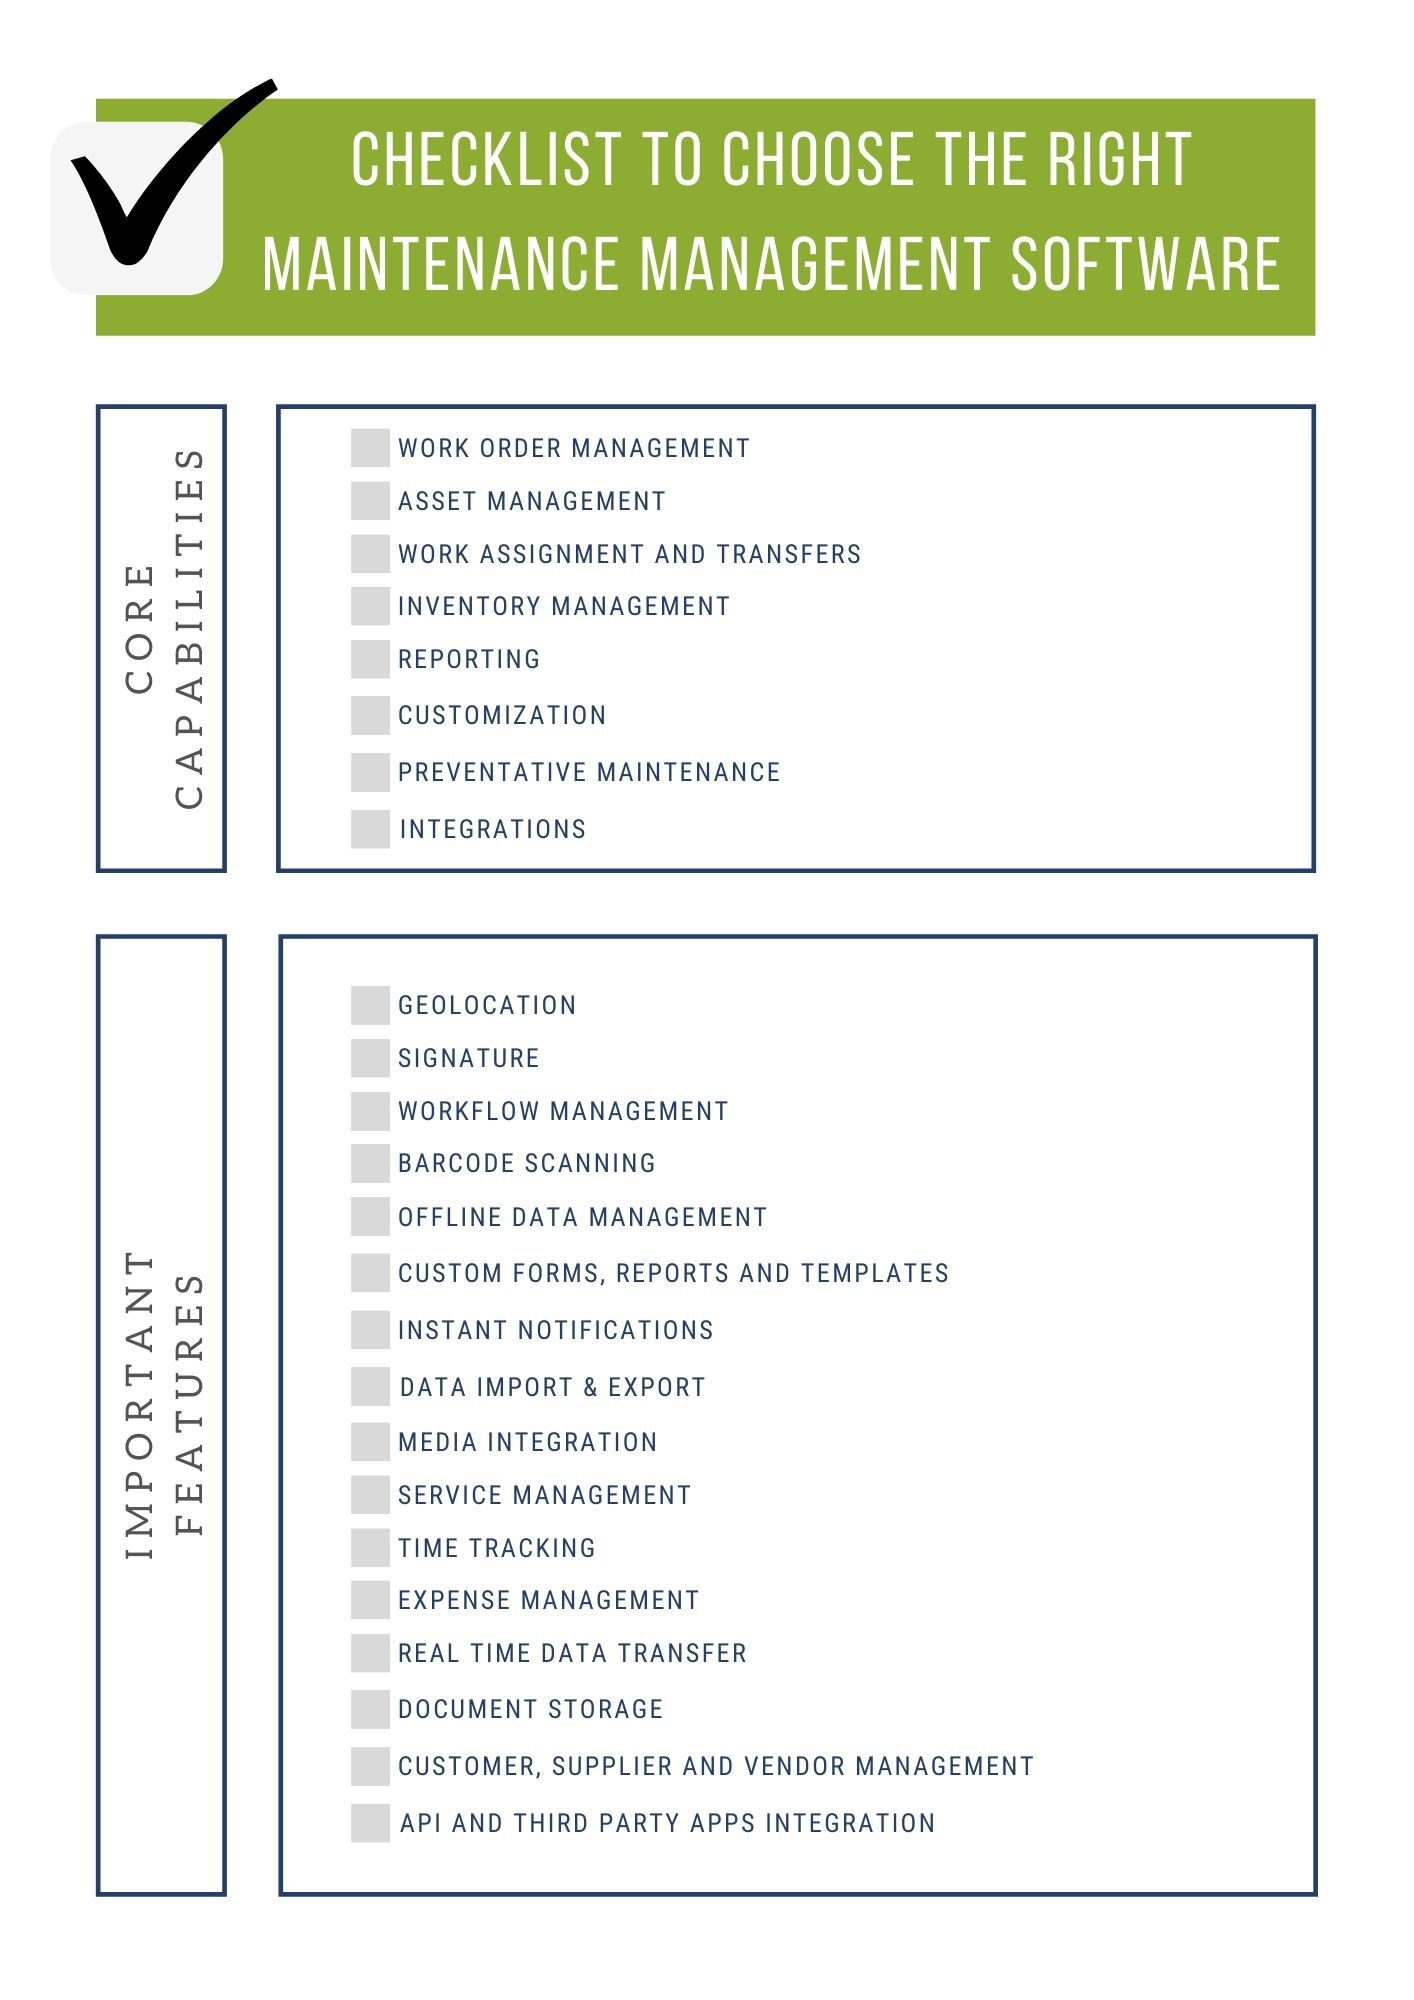 005 Unusual Property Management Maintenance Checklist Template Example  FreeFull